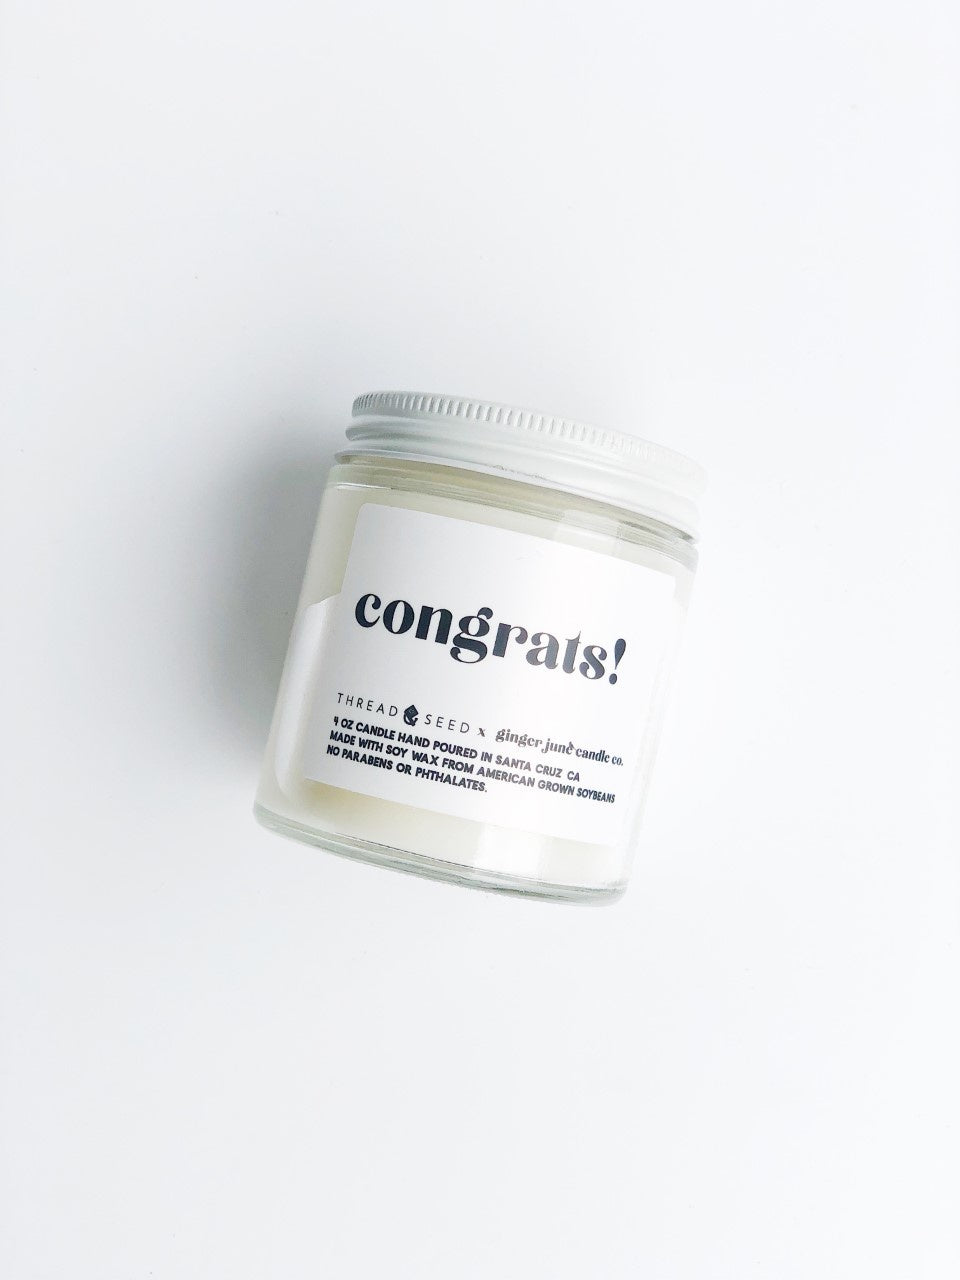 Congrats Candle by Ginger June x Thread + Seed